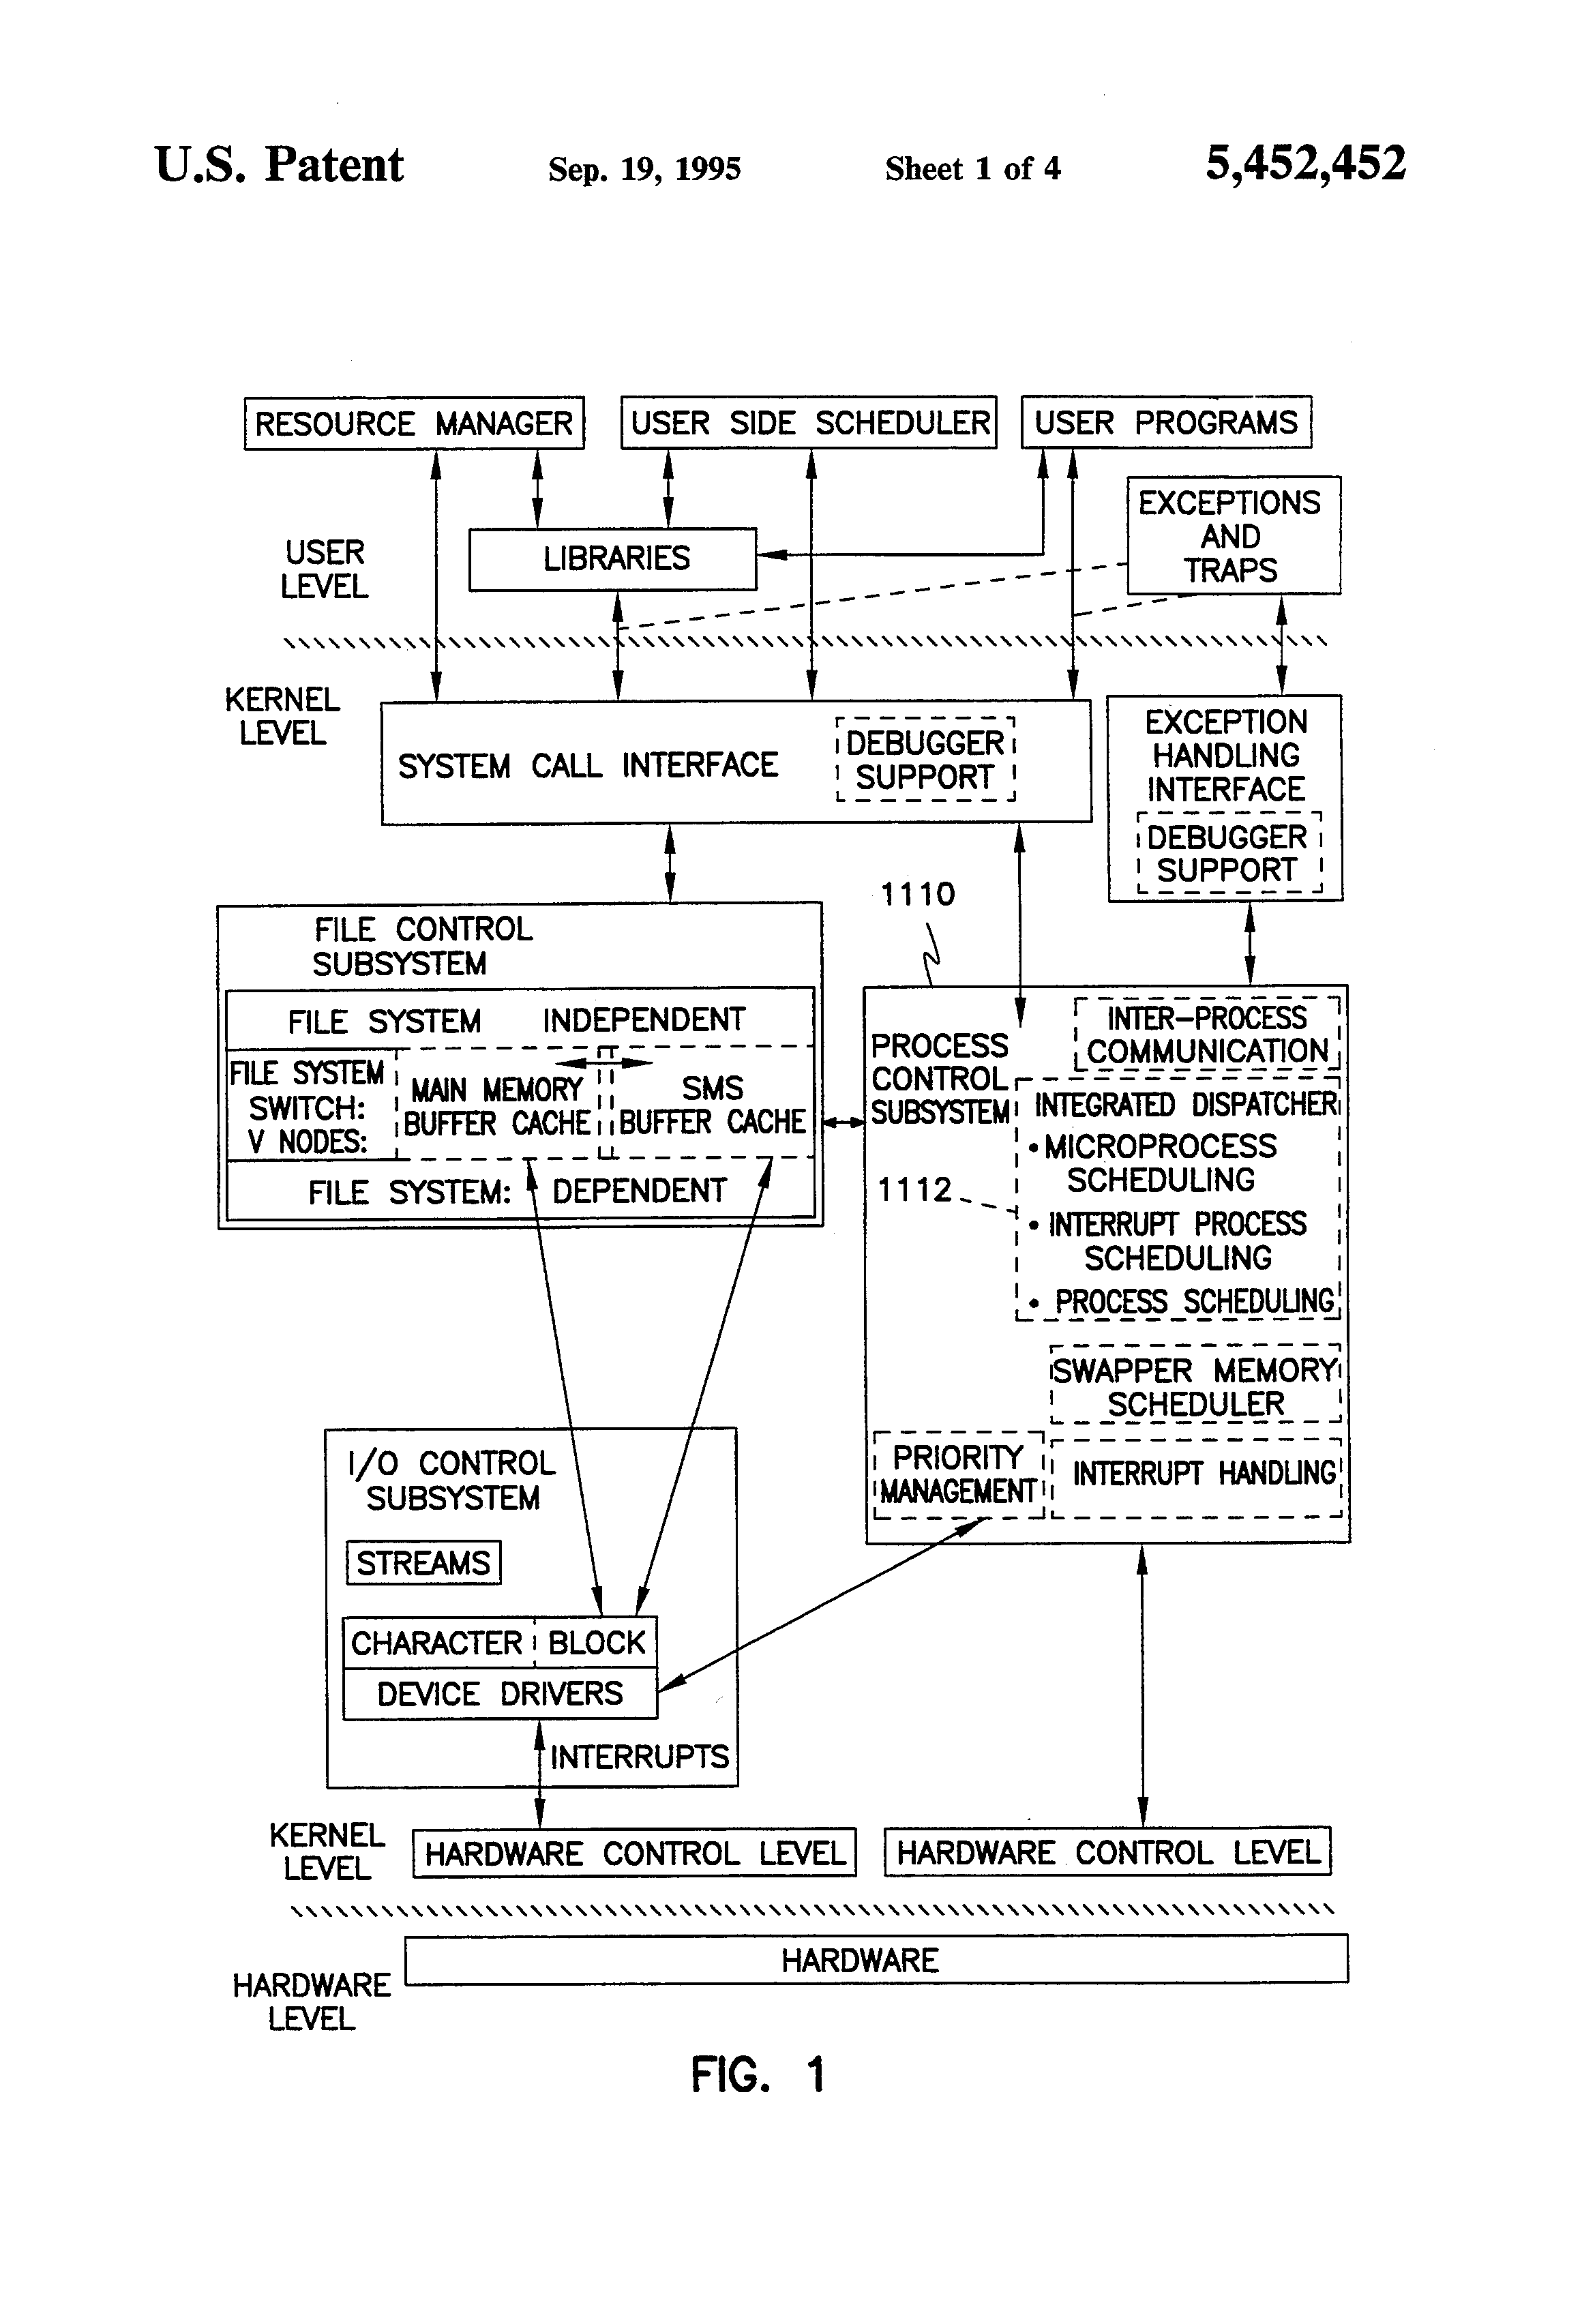 assigning processes to processors